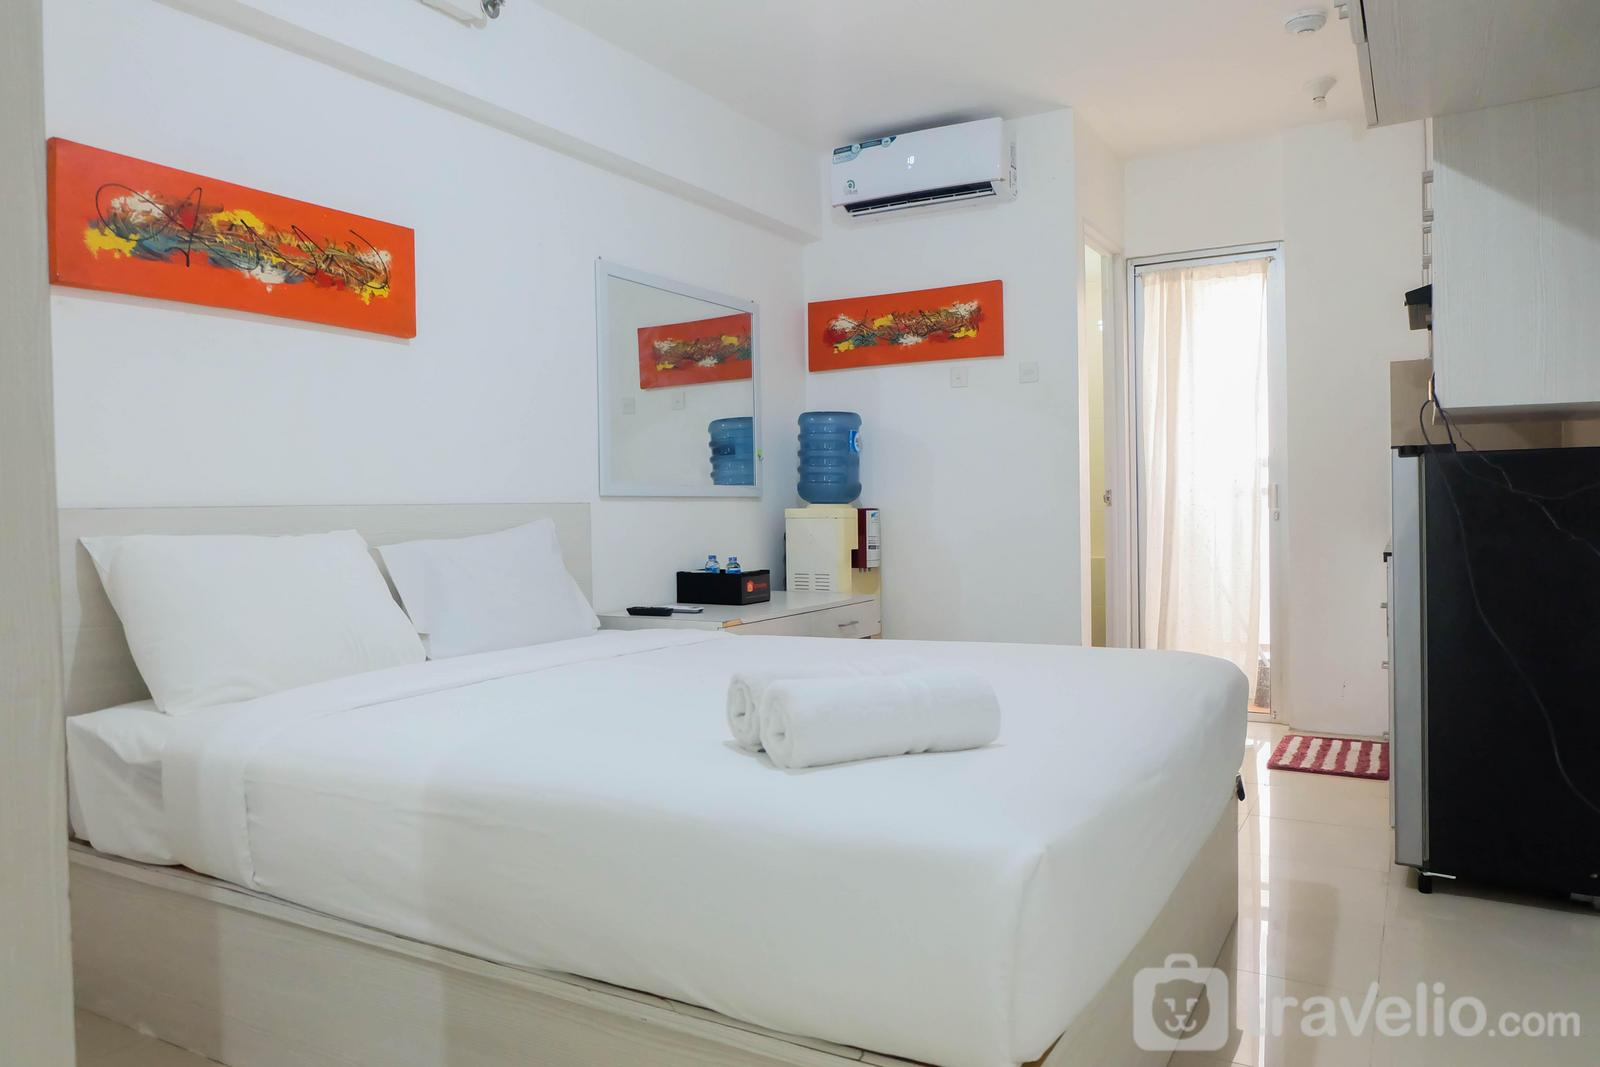 Bassura City Cipinang - Tidy Studio Apartment at Bassura City near Shopping Mall By Travelio